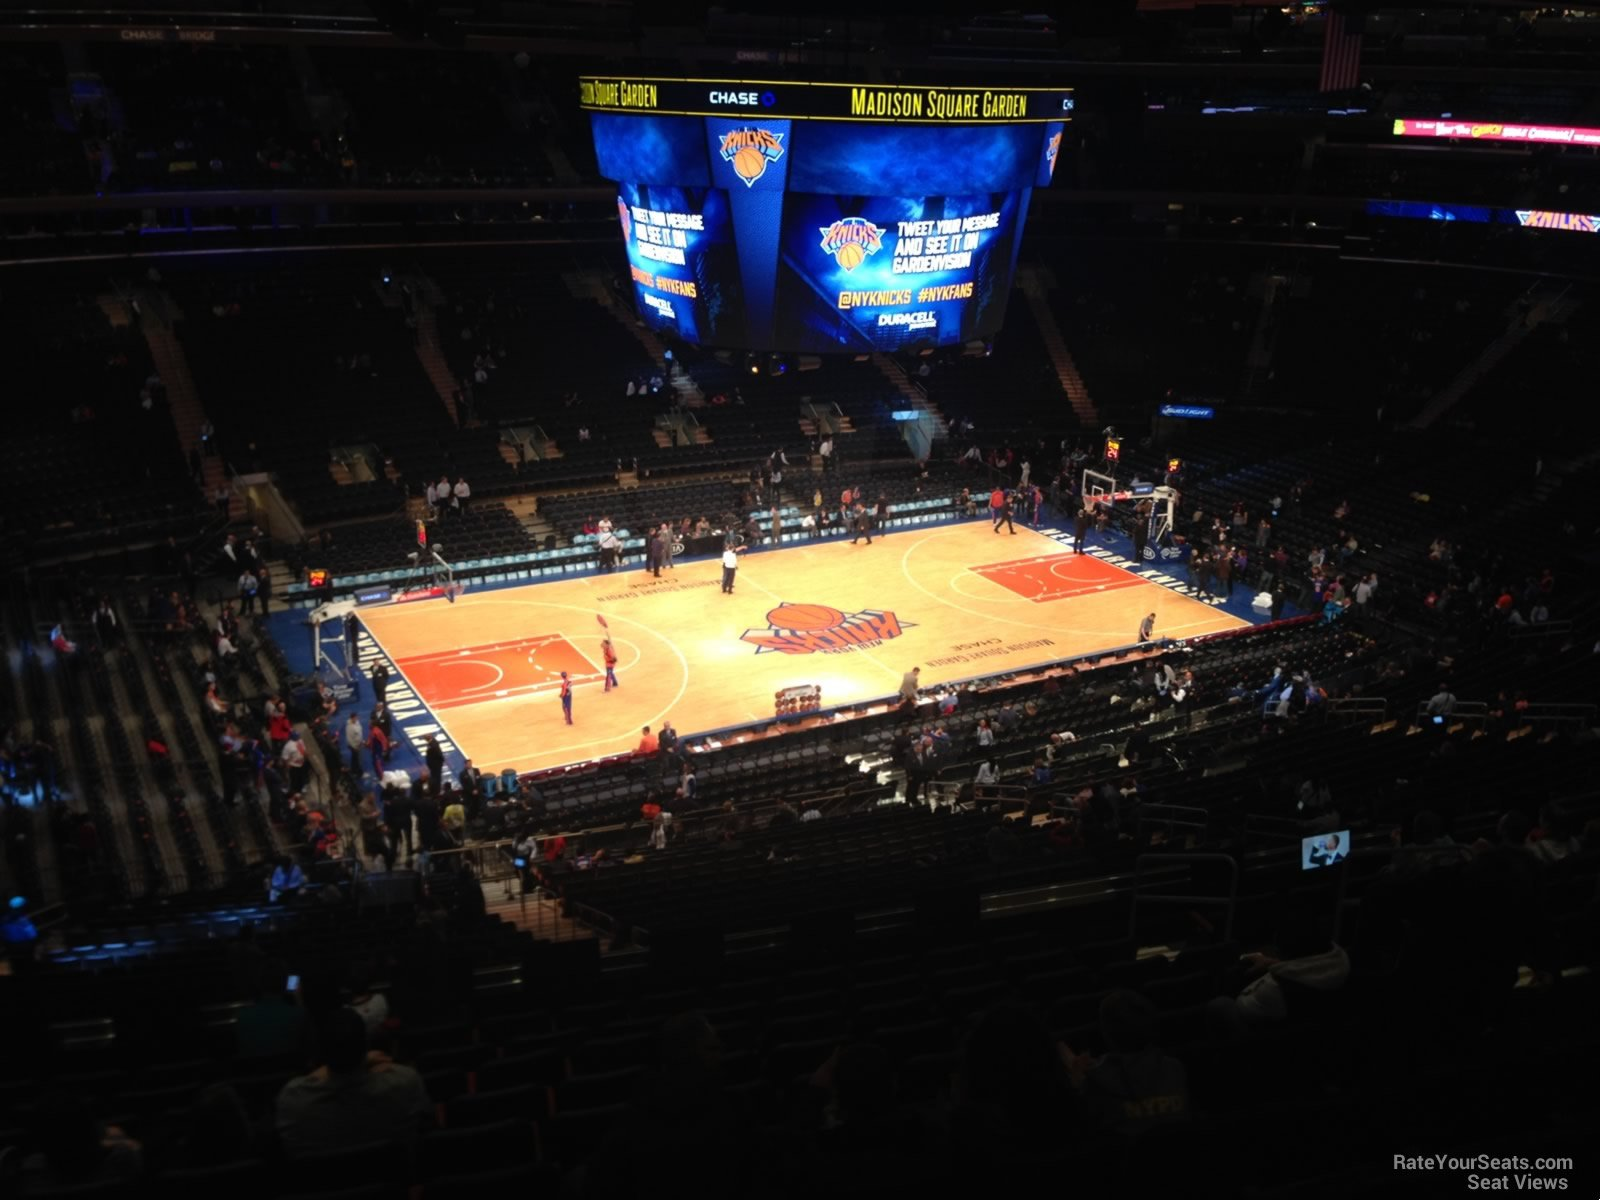 Madison square garden section 209 new york knicks Madison square garden basketball